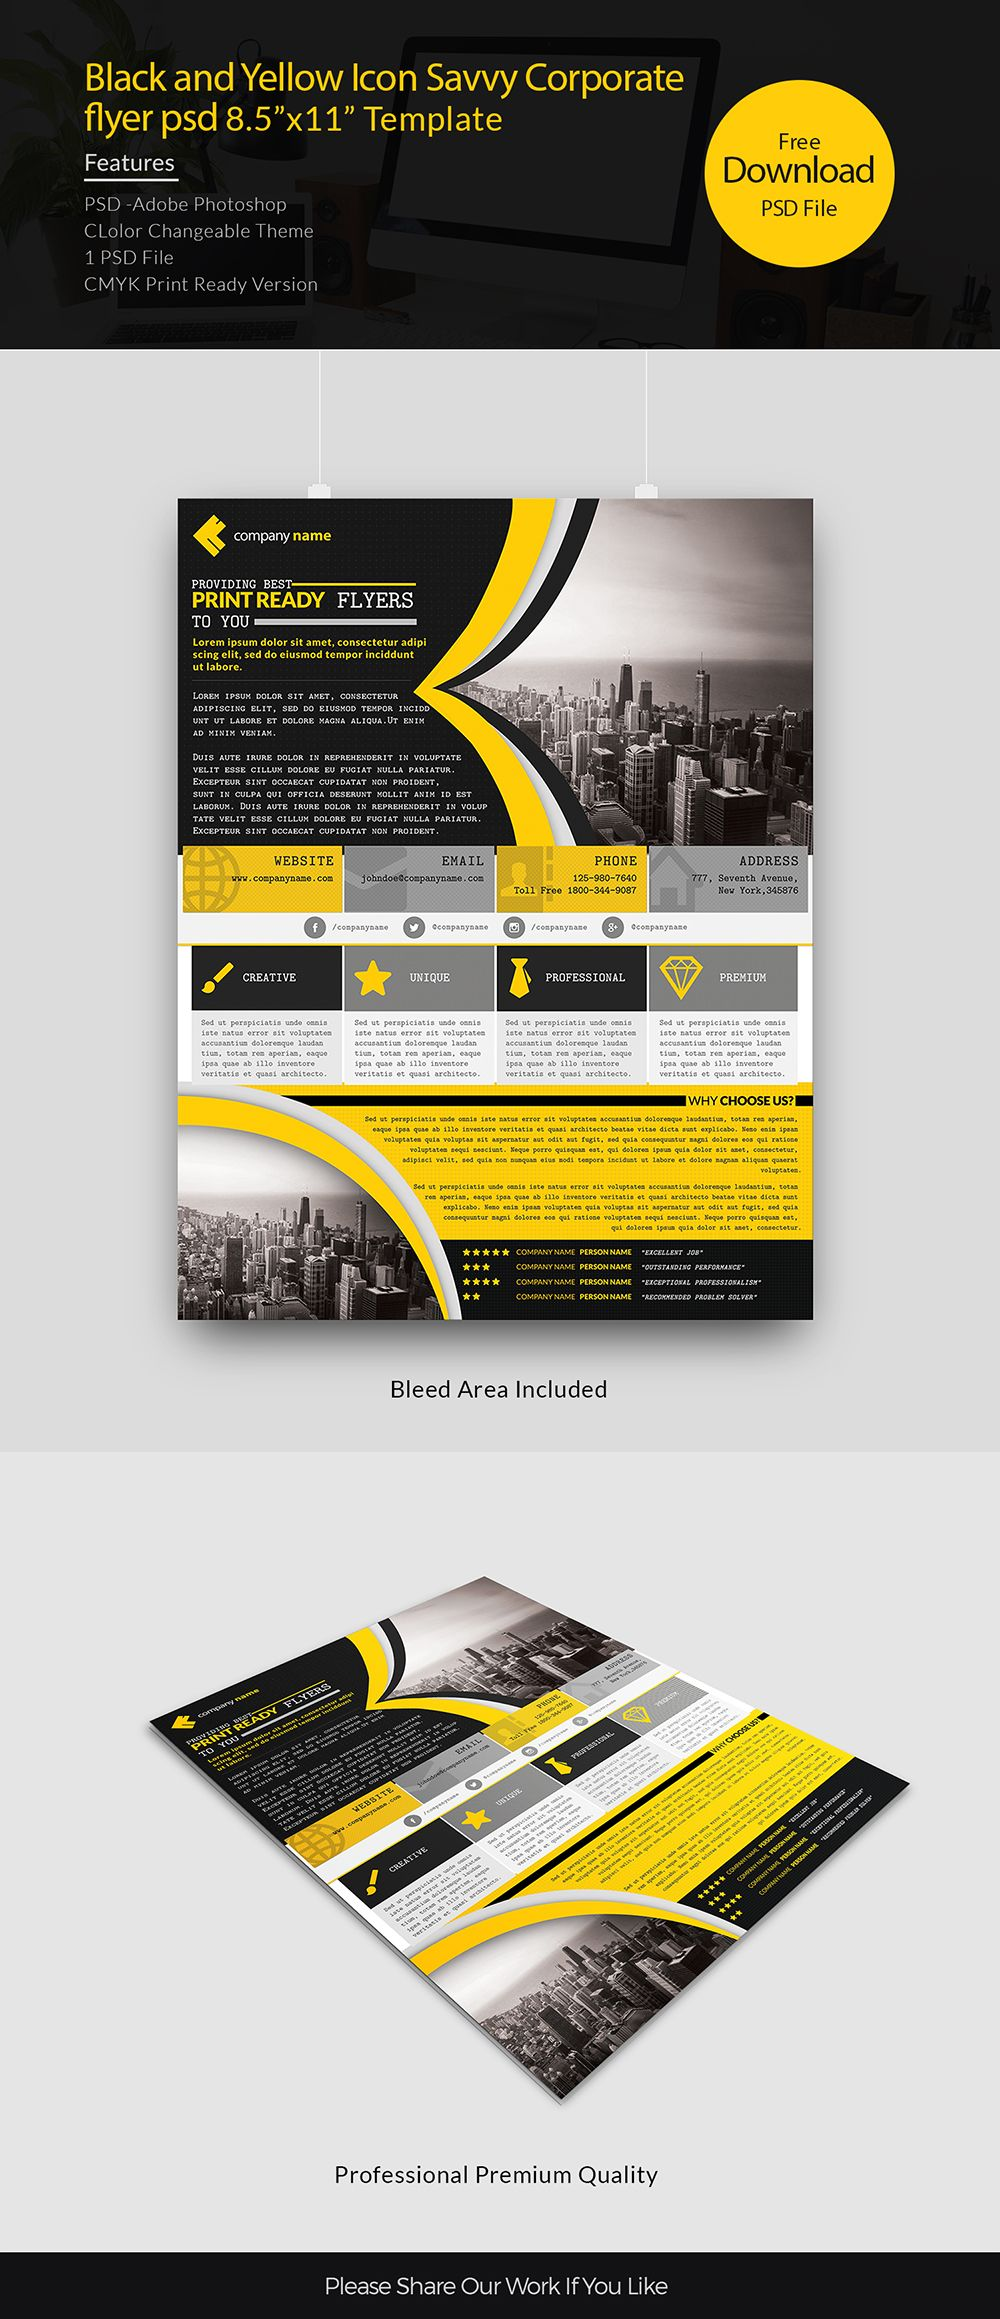 black and Yellow Icon Savvy Corporate flyer psd free download ...